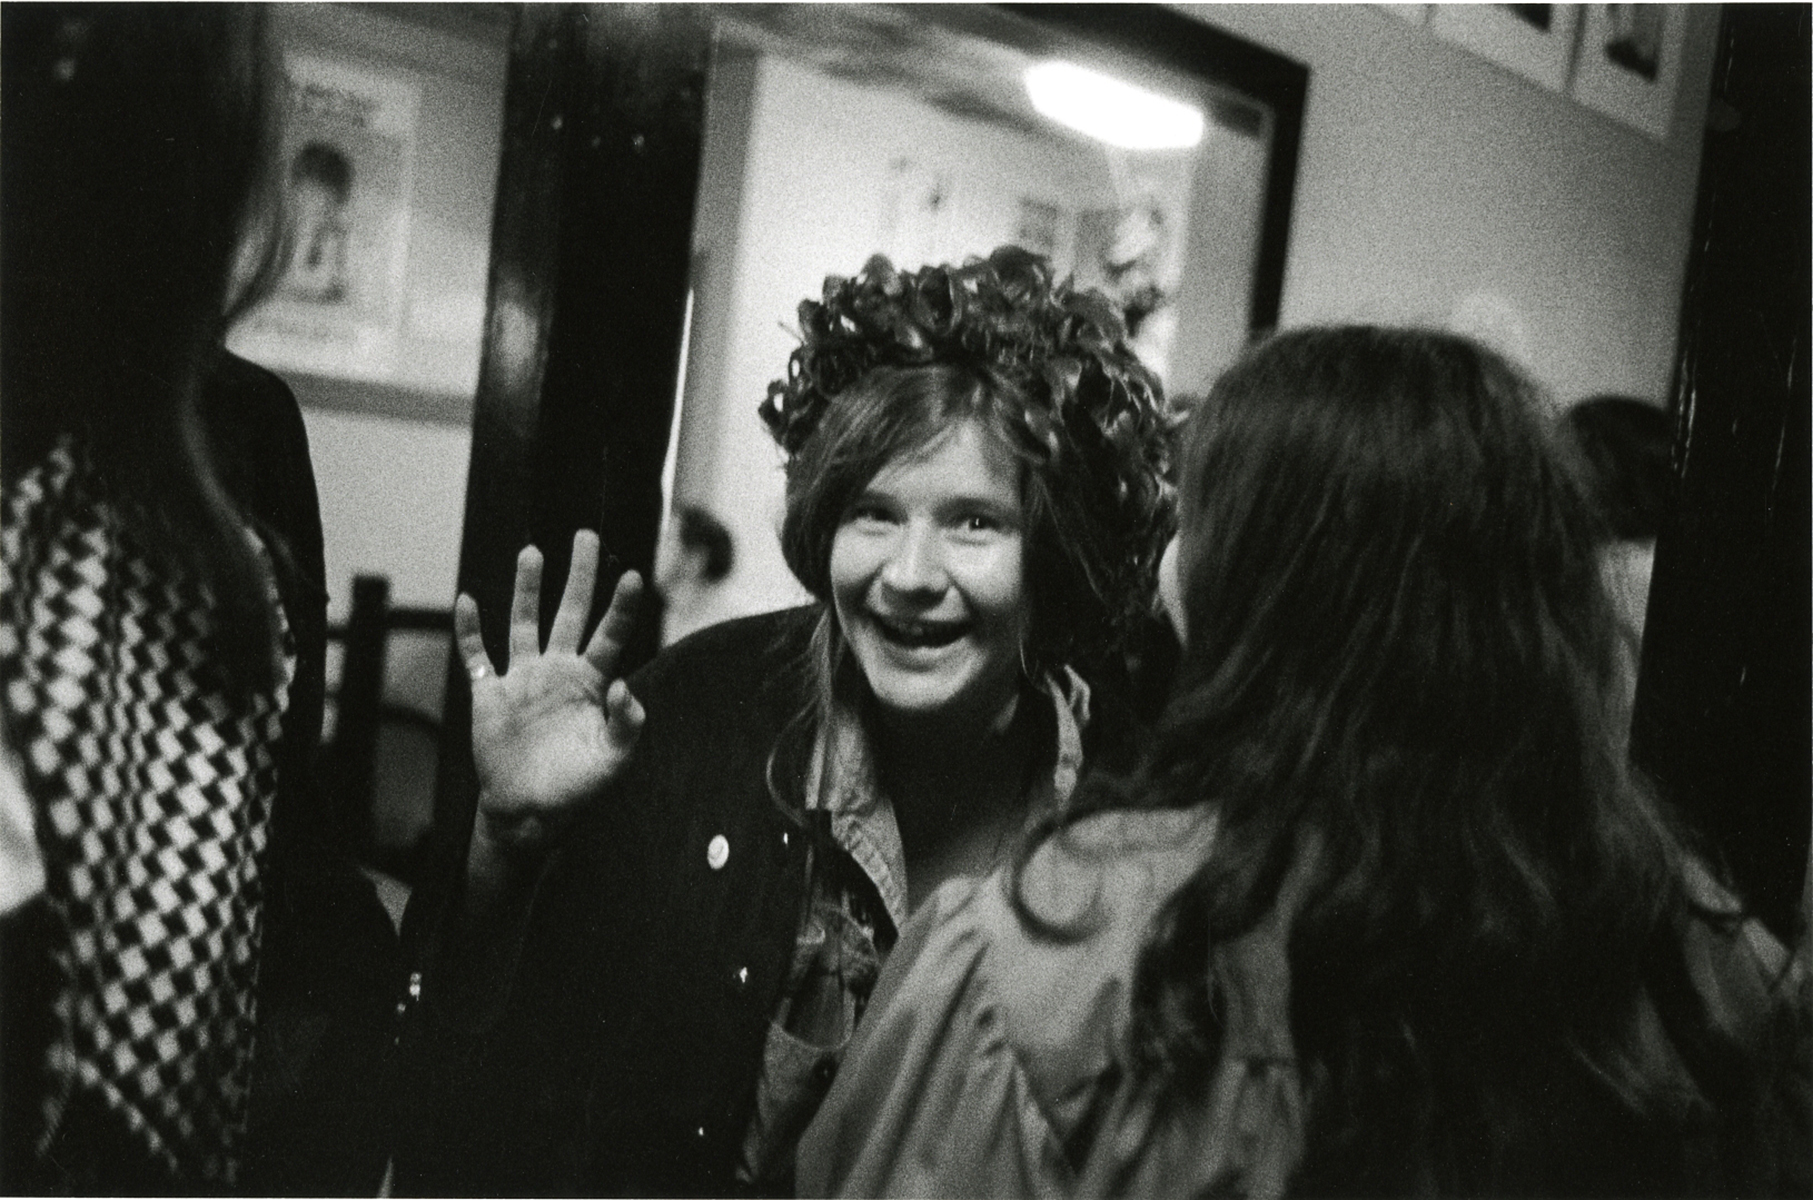 """Elaine Mayes: Summer of Love"" Exhibit at Joseph Bellows Gallery"